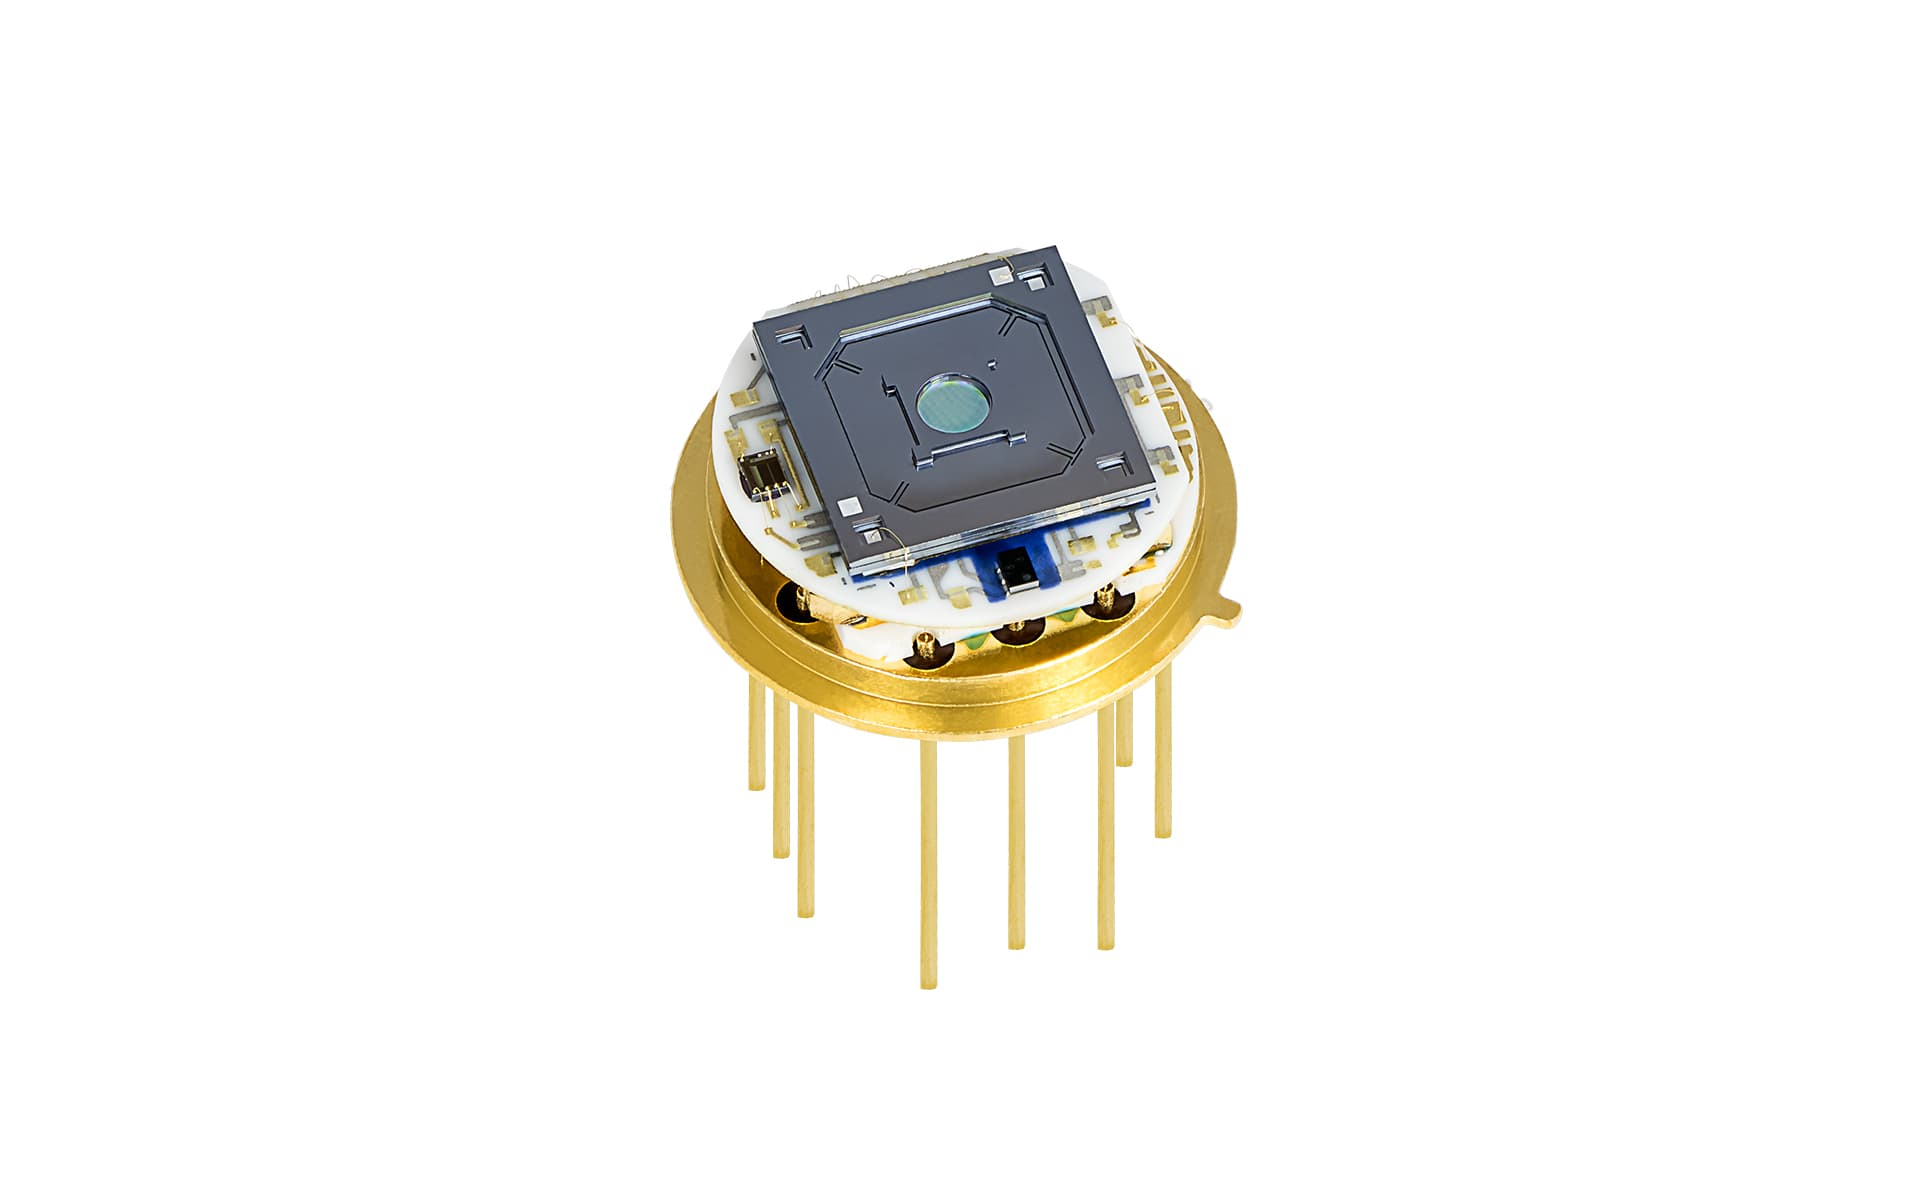 Tunable FPI detectors from InfraTec